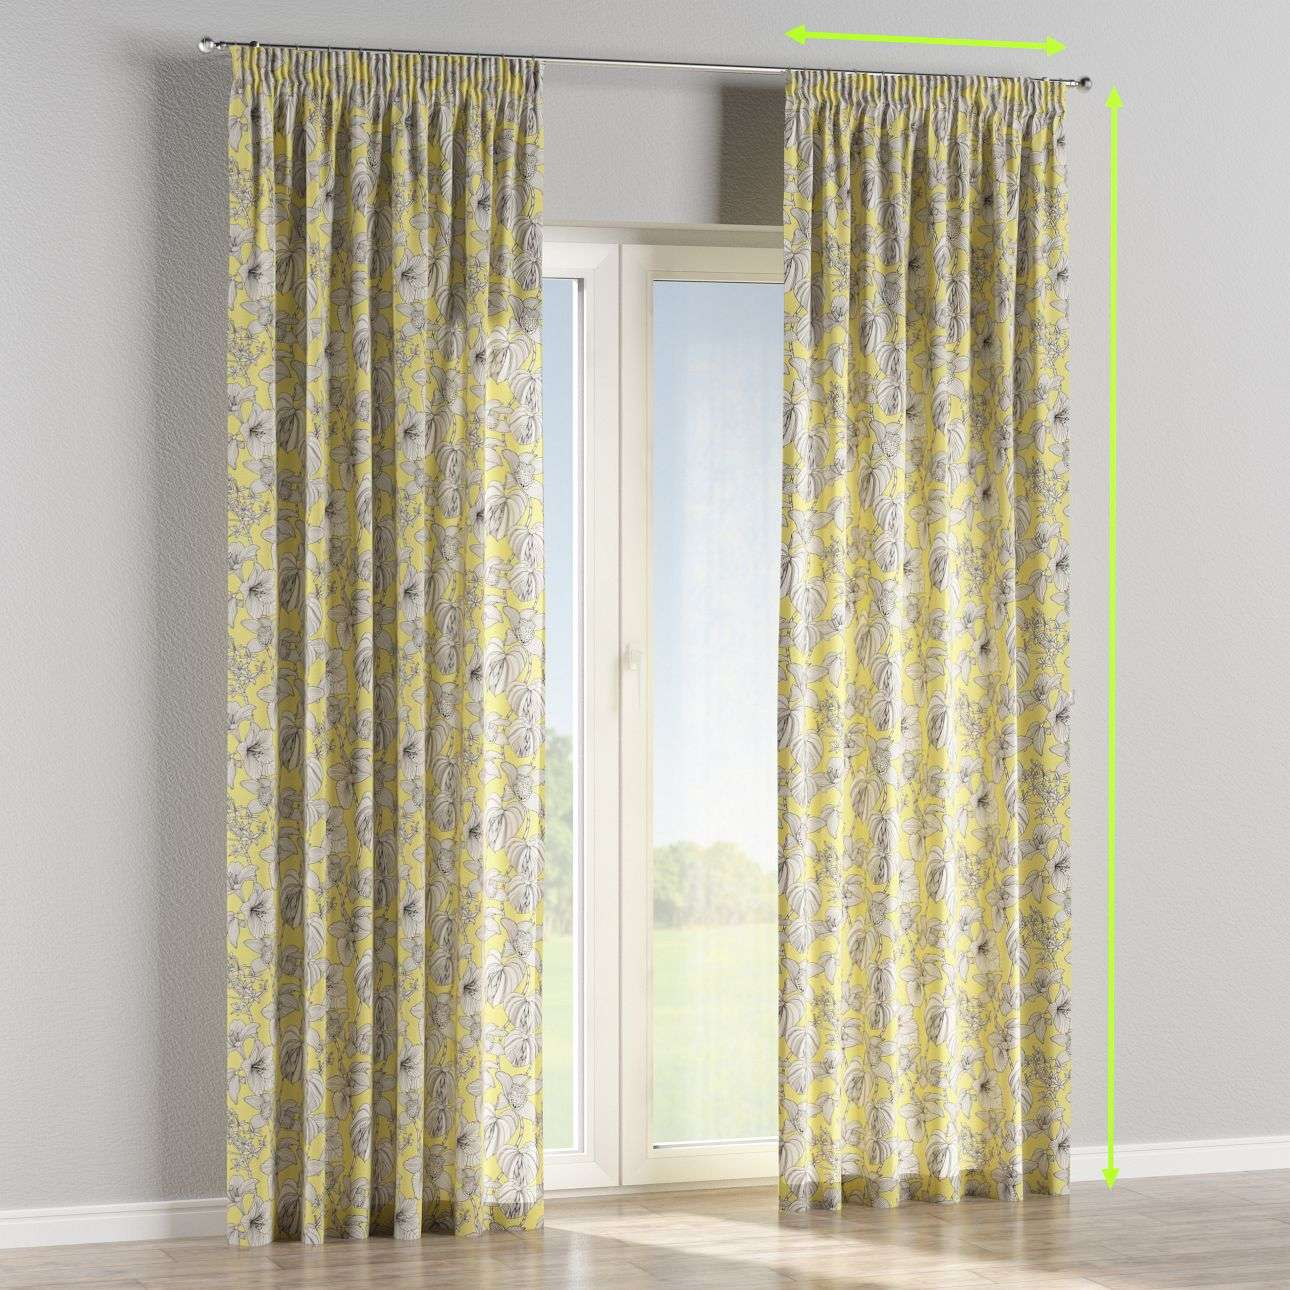 Pencil pleat curtains in collection Brooklyn, fabric: 137-78